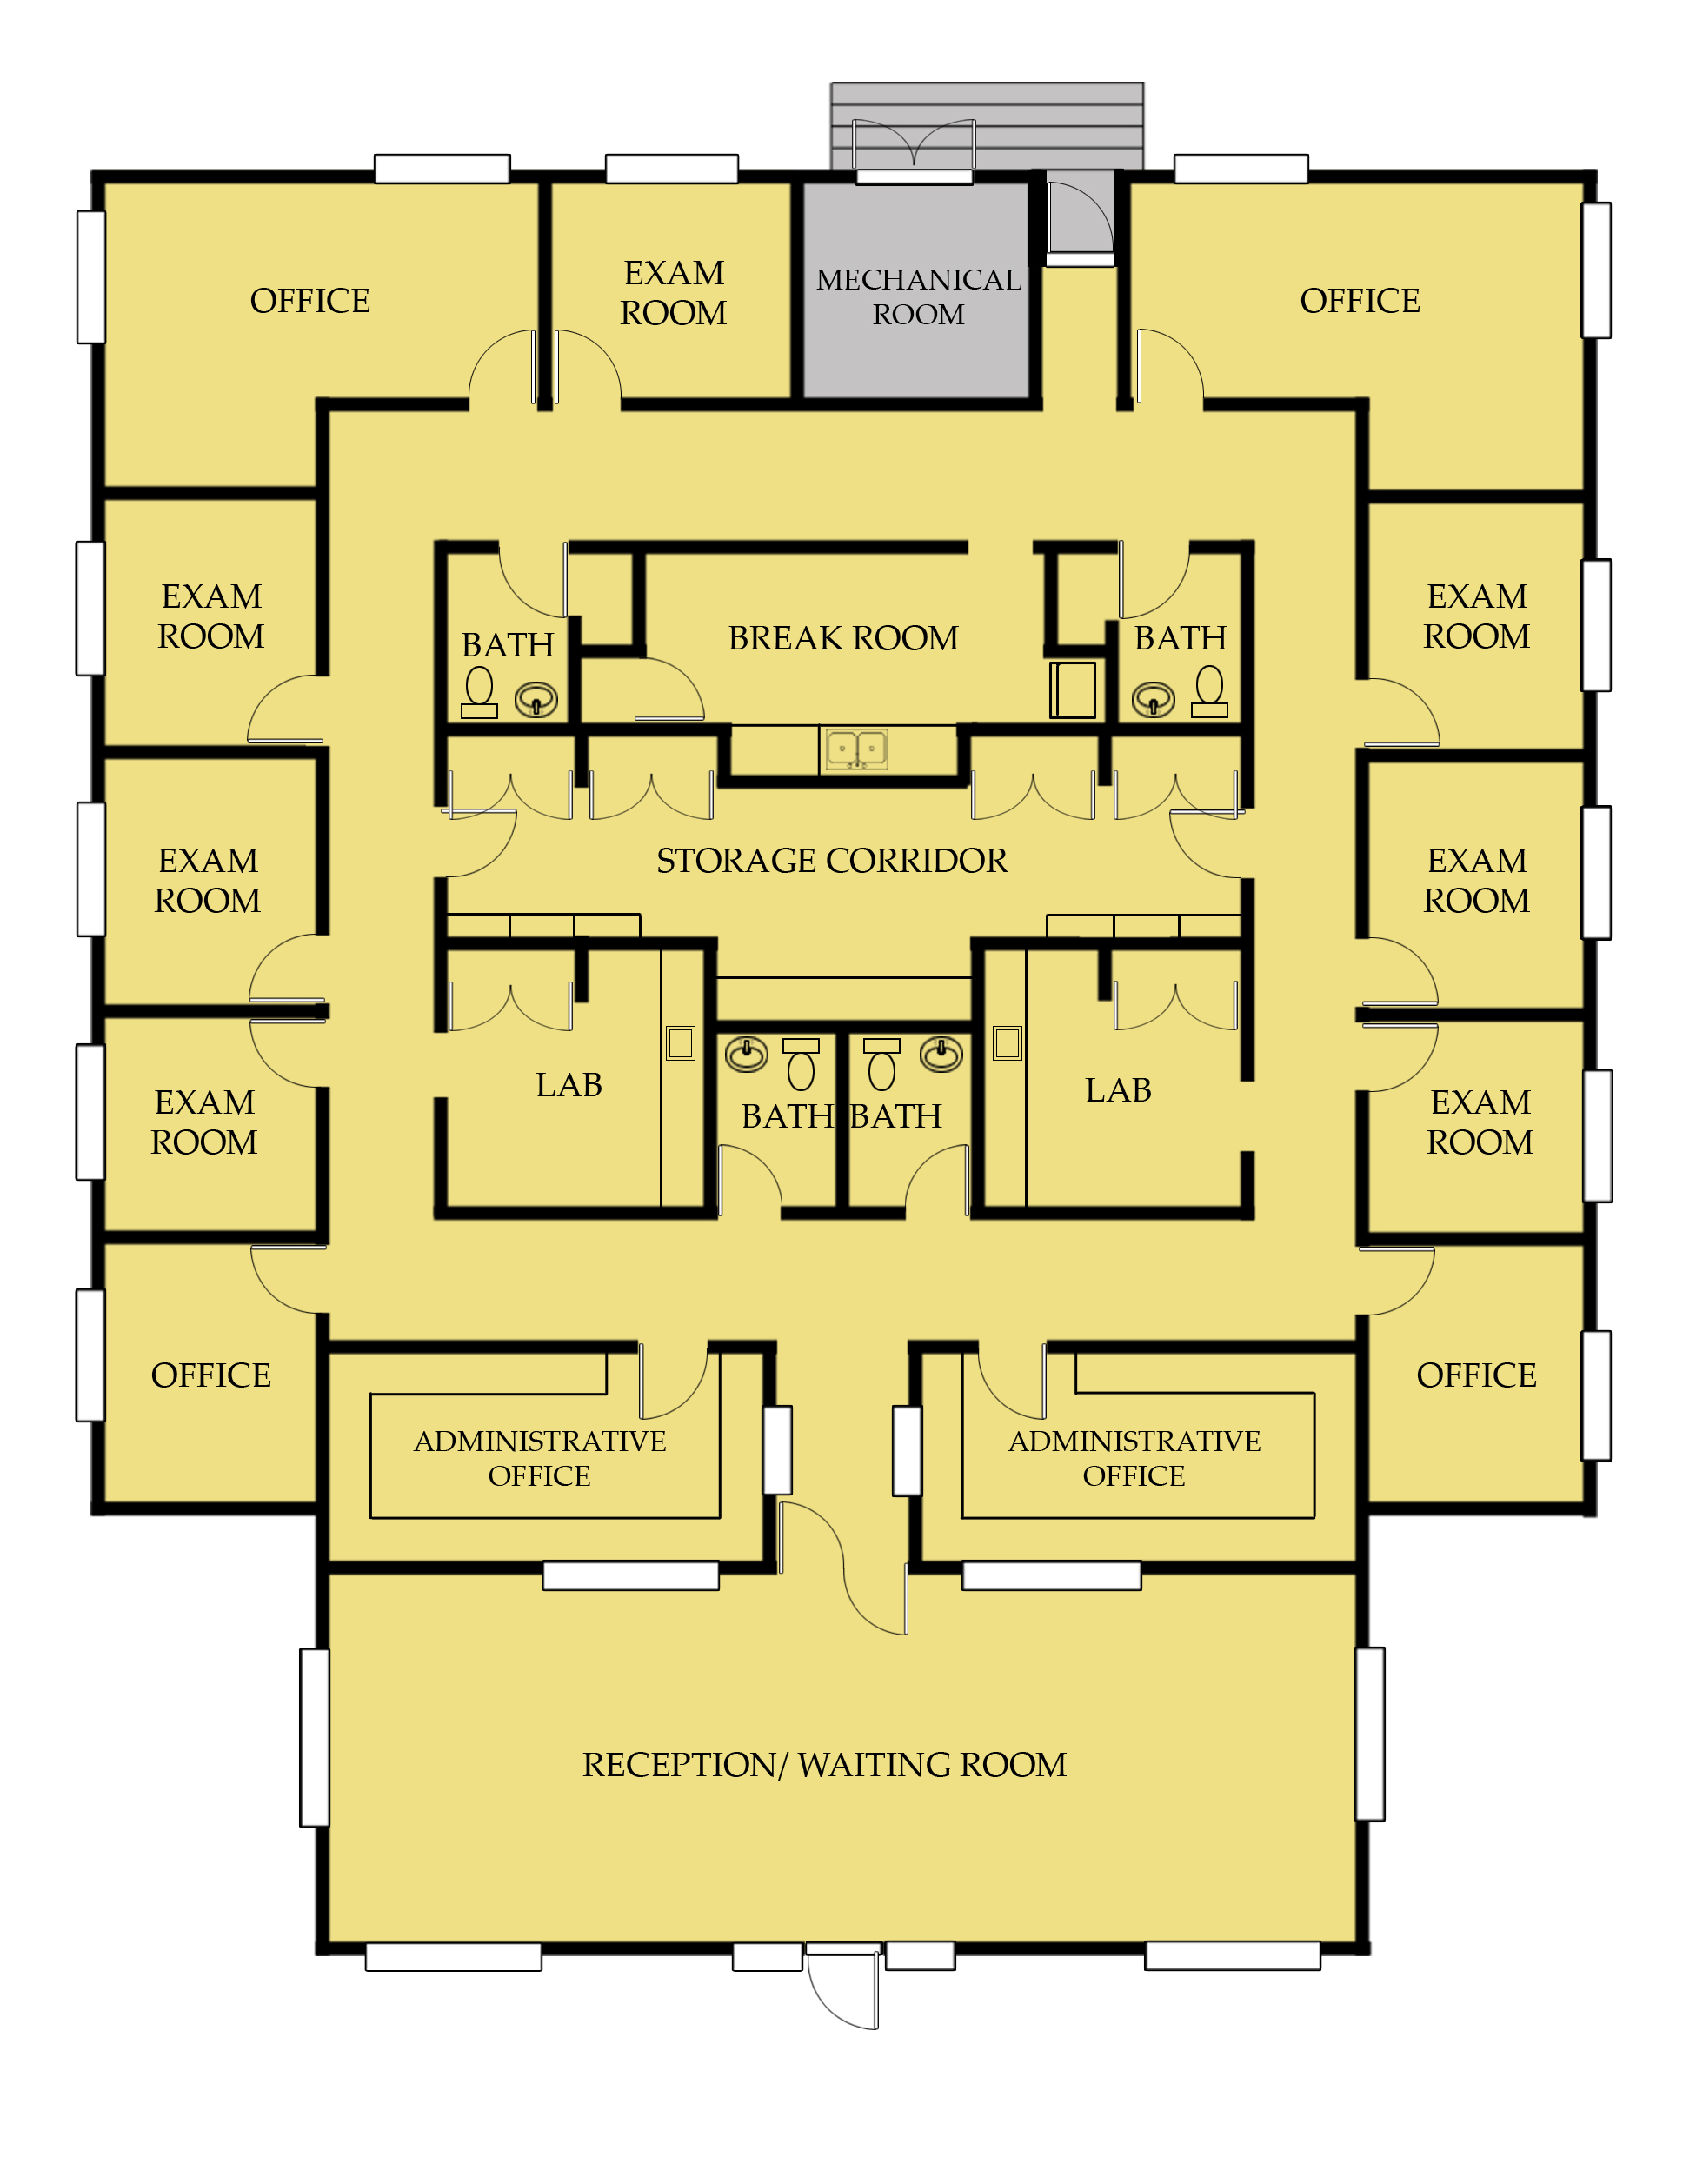 Medical office floor plan example search by for Office floor plan samples